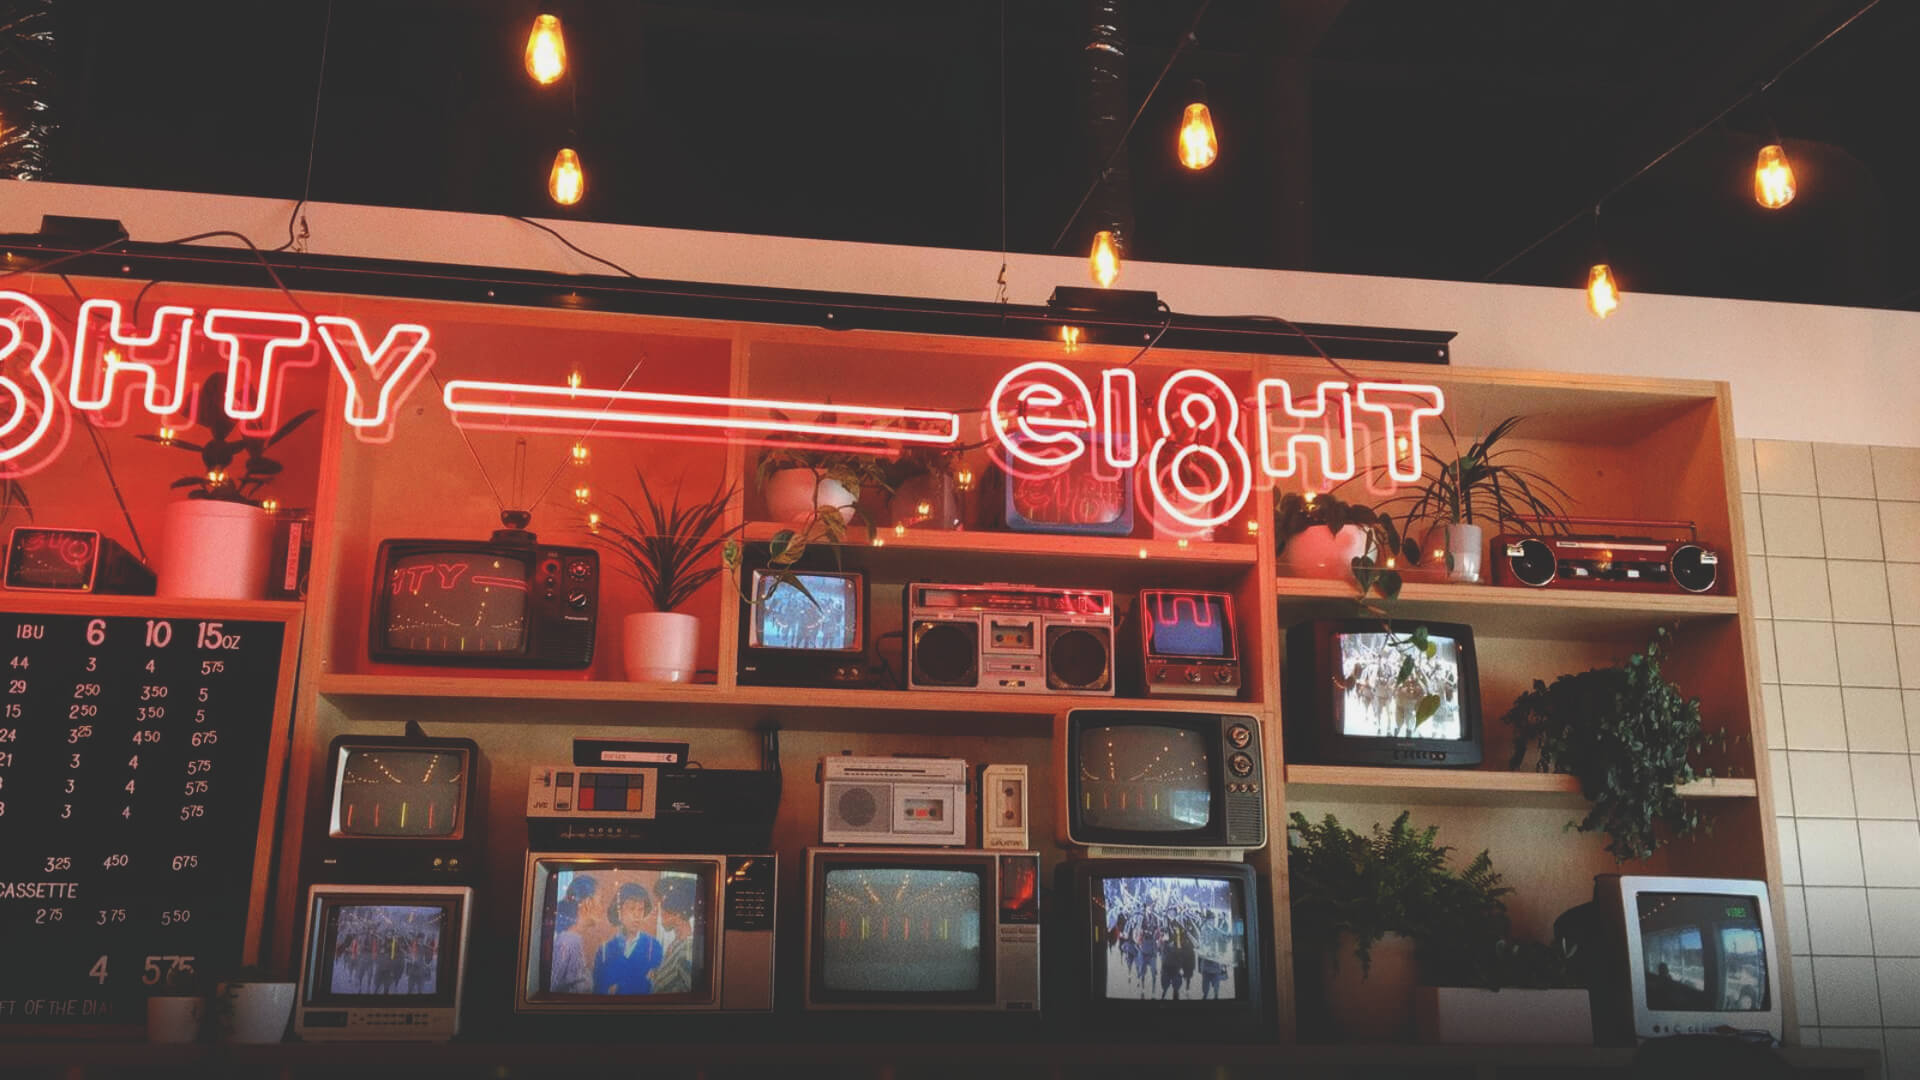 Eighty-Eight Brewing Co